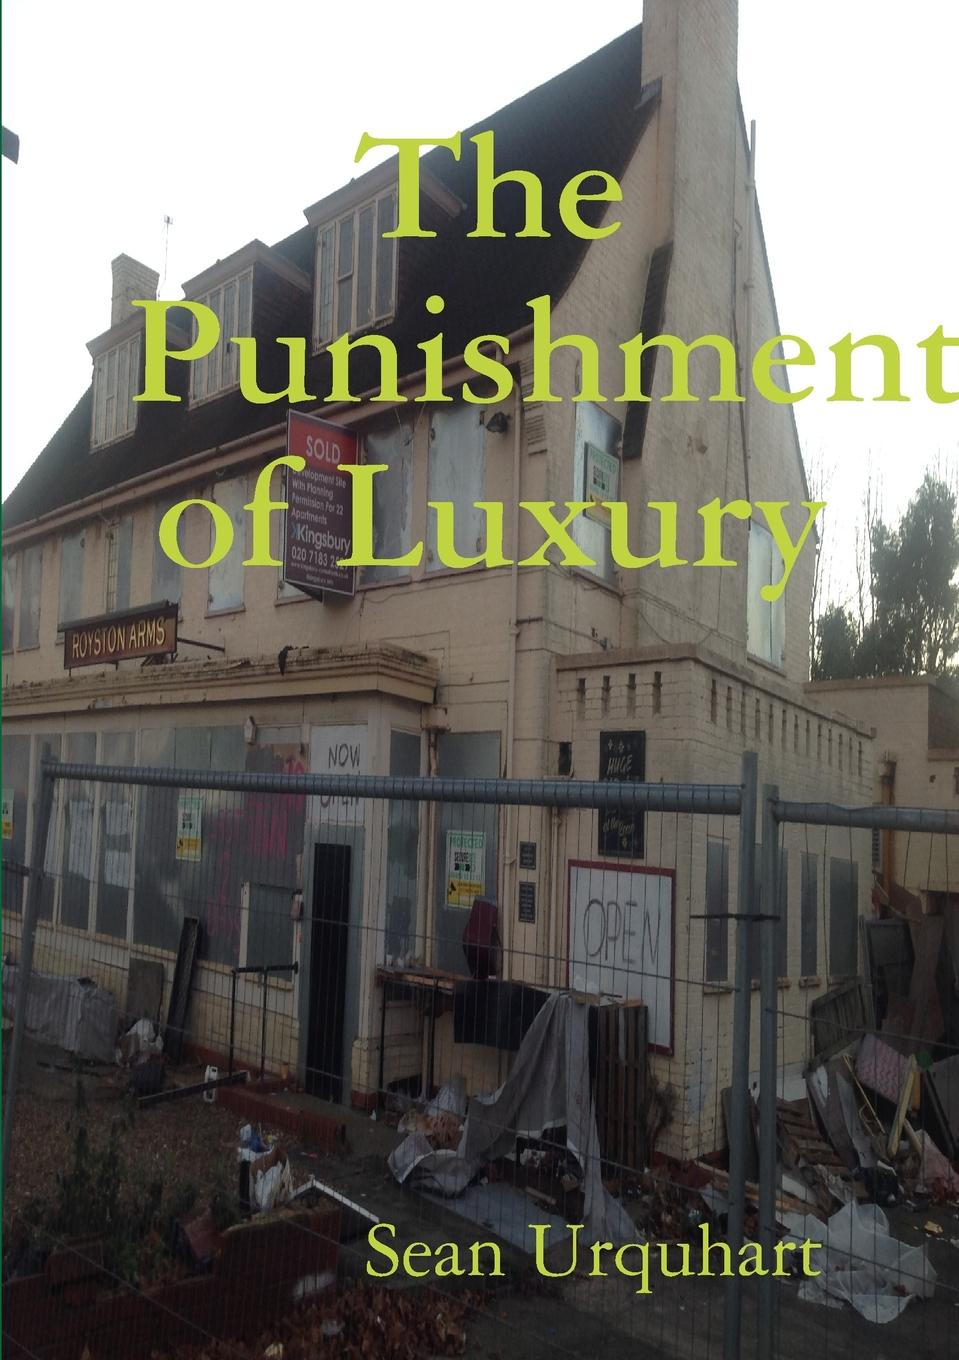 Sean Urquhart The Punishment of Luxury deborah morse denenholz a companion to the brontes